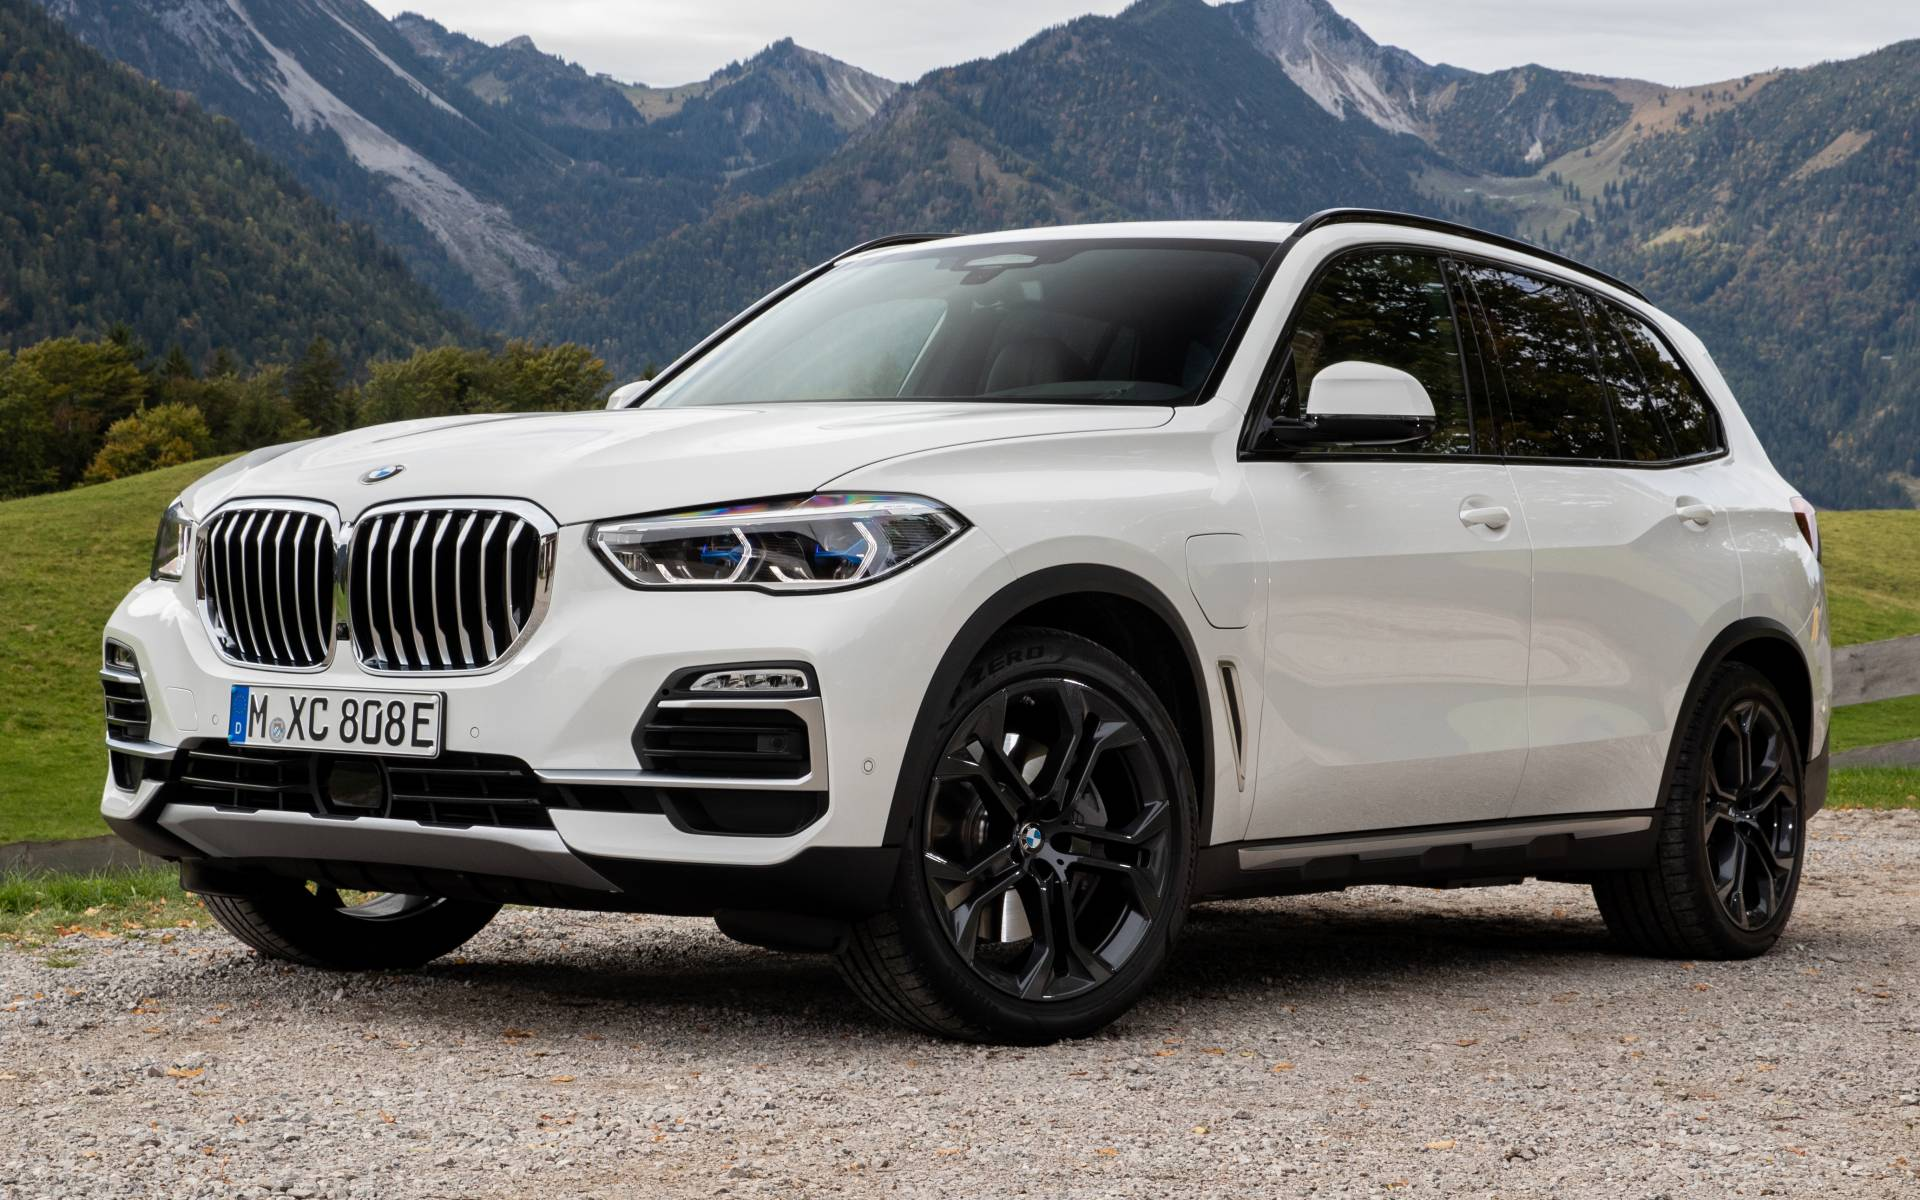 2020 BMW X5 - News, reviews, picture galleries and videos - The Car Guide